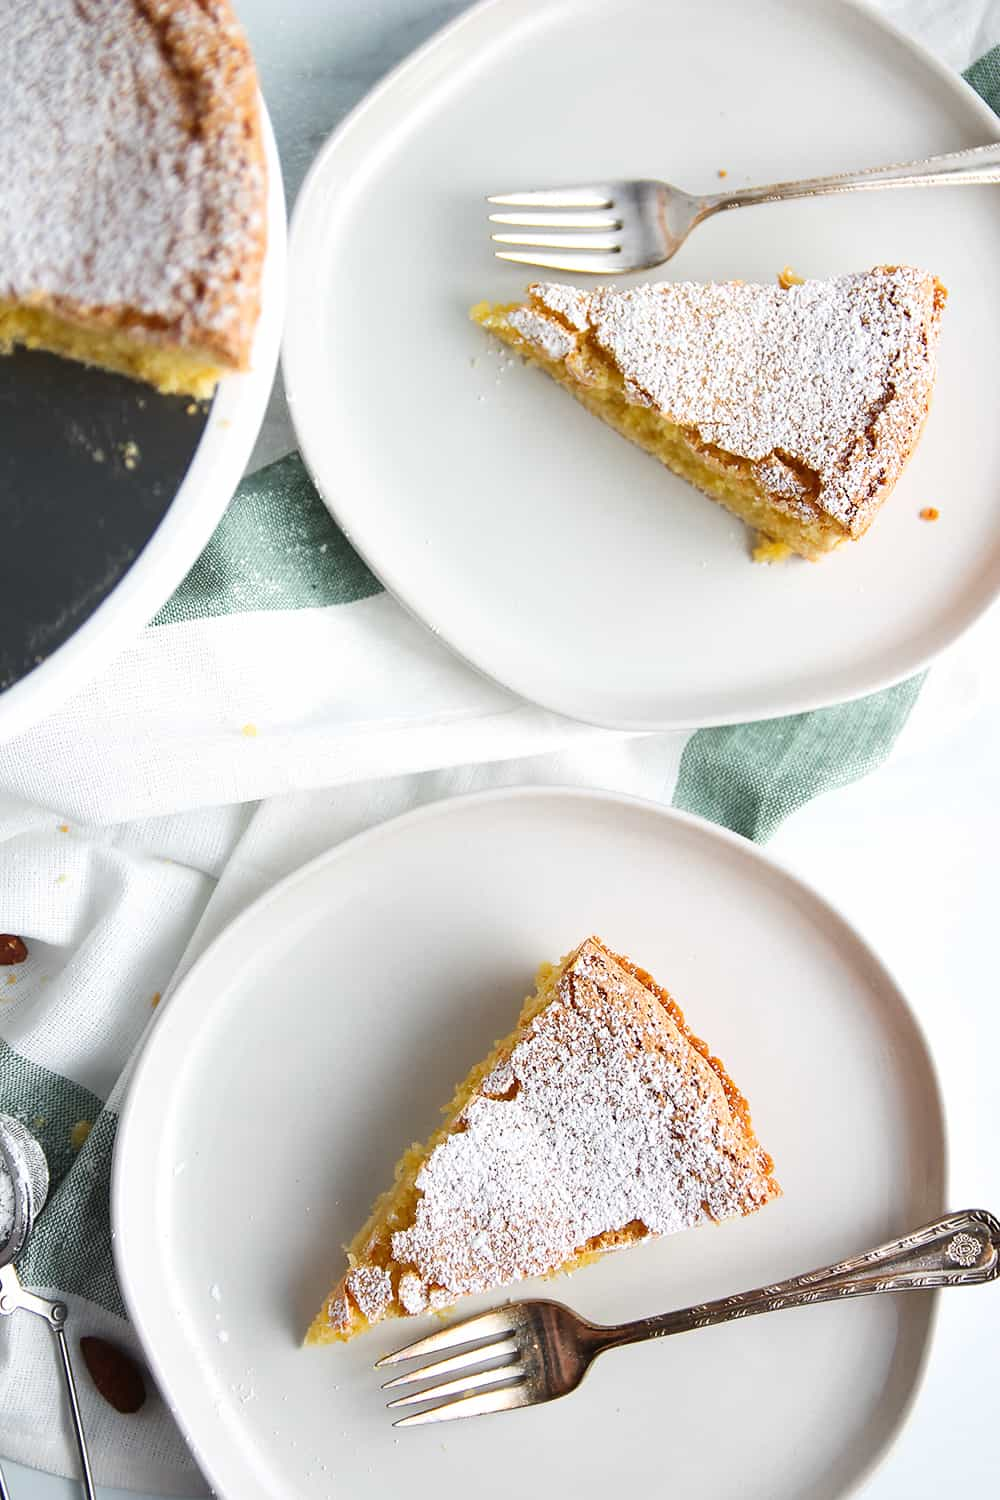 Plated slices of Galician Almond Tart dusted with powdered sugar